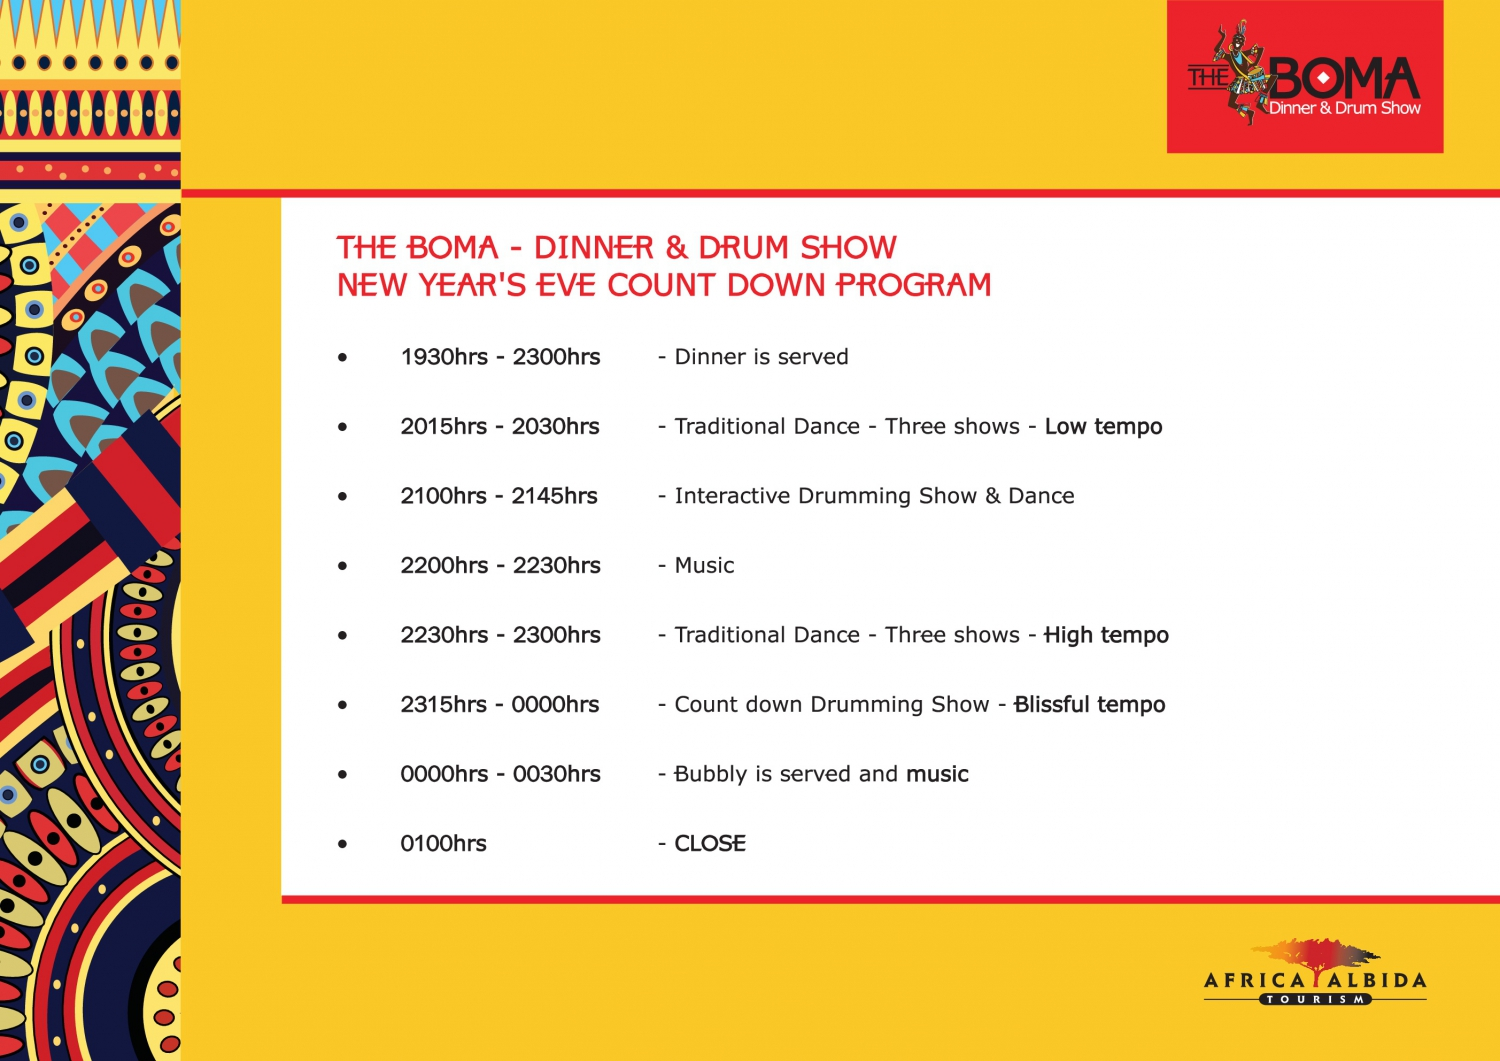 The Boma New Year Programme